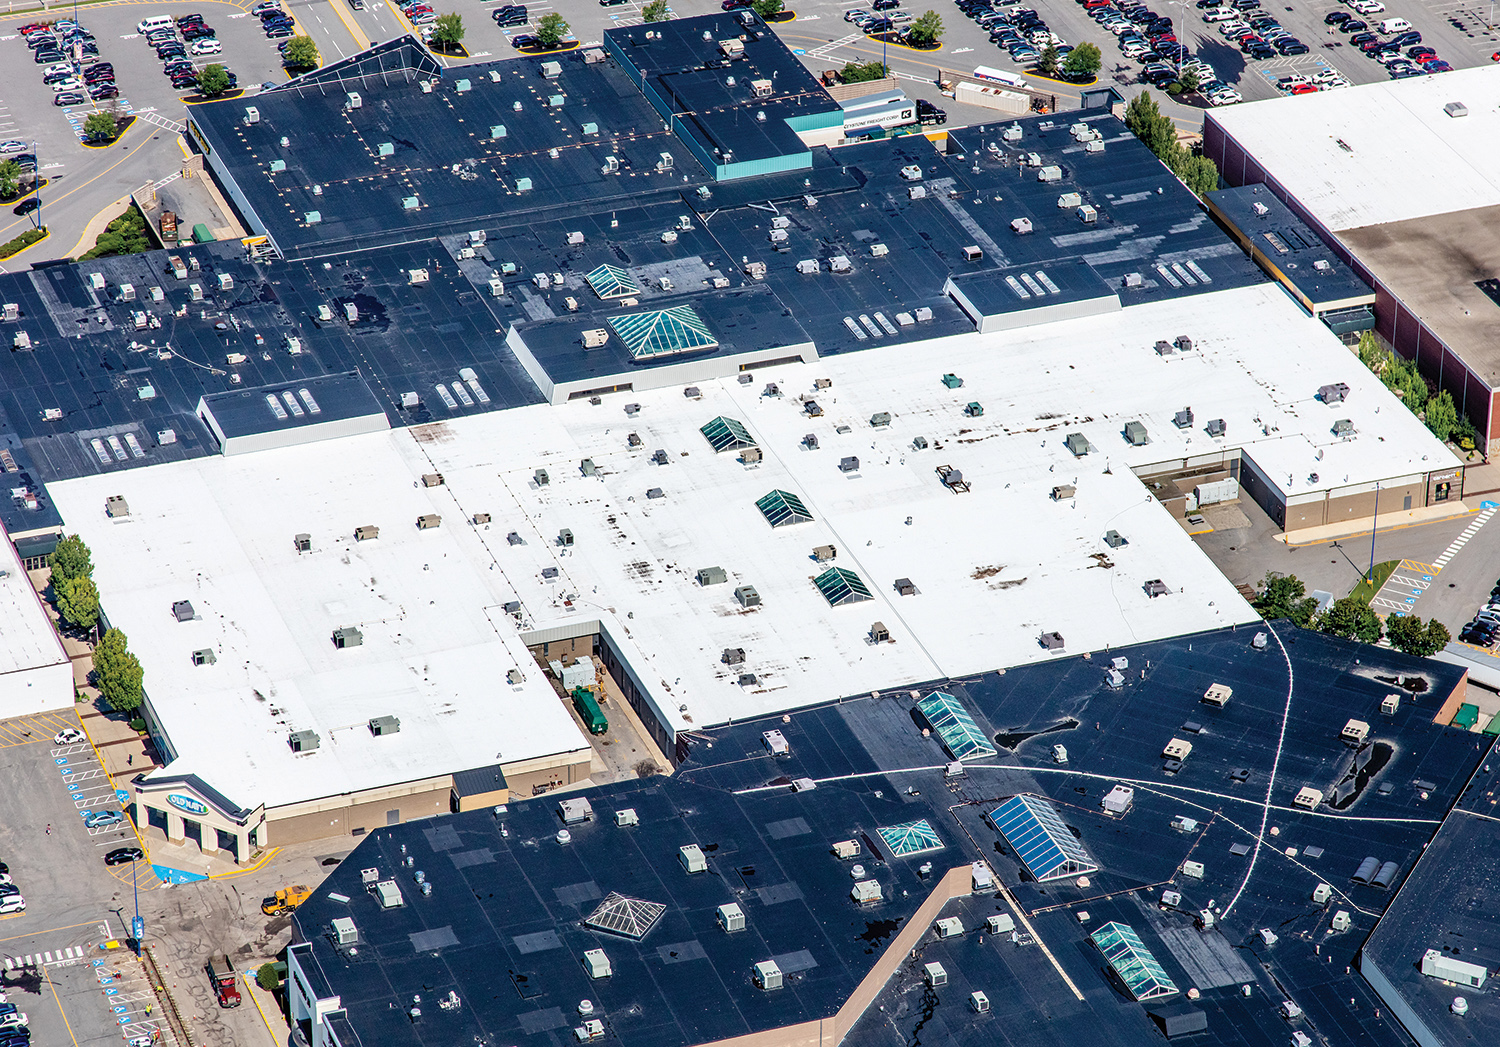 Commercial roofing Massachusetts